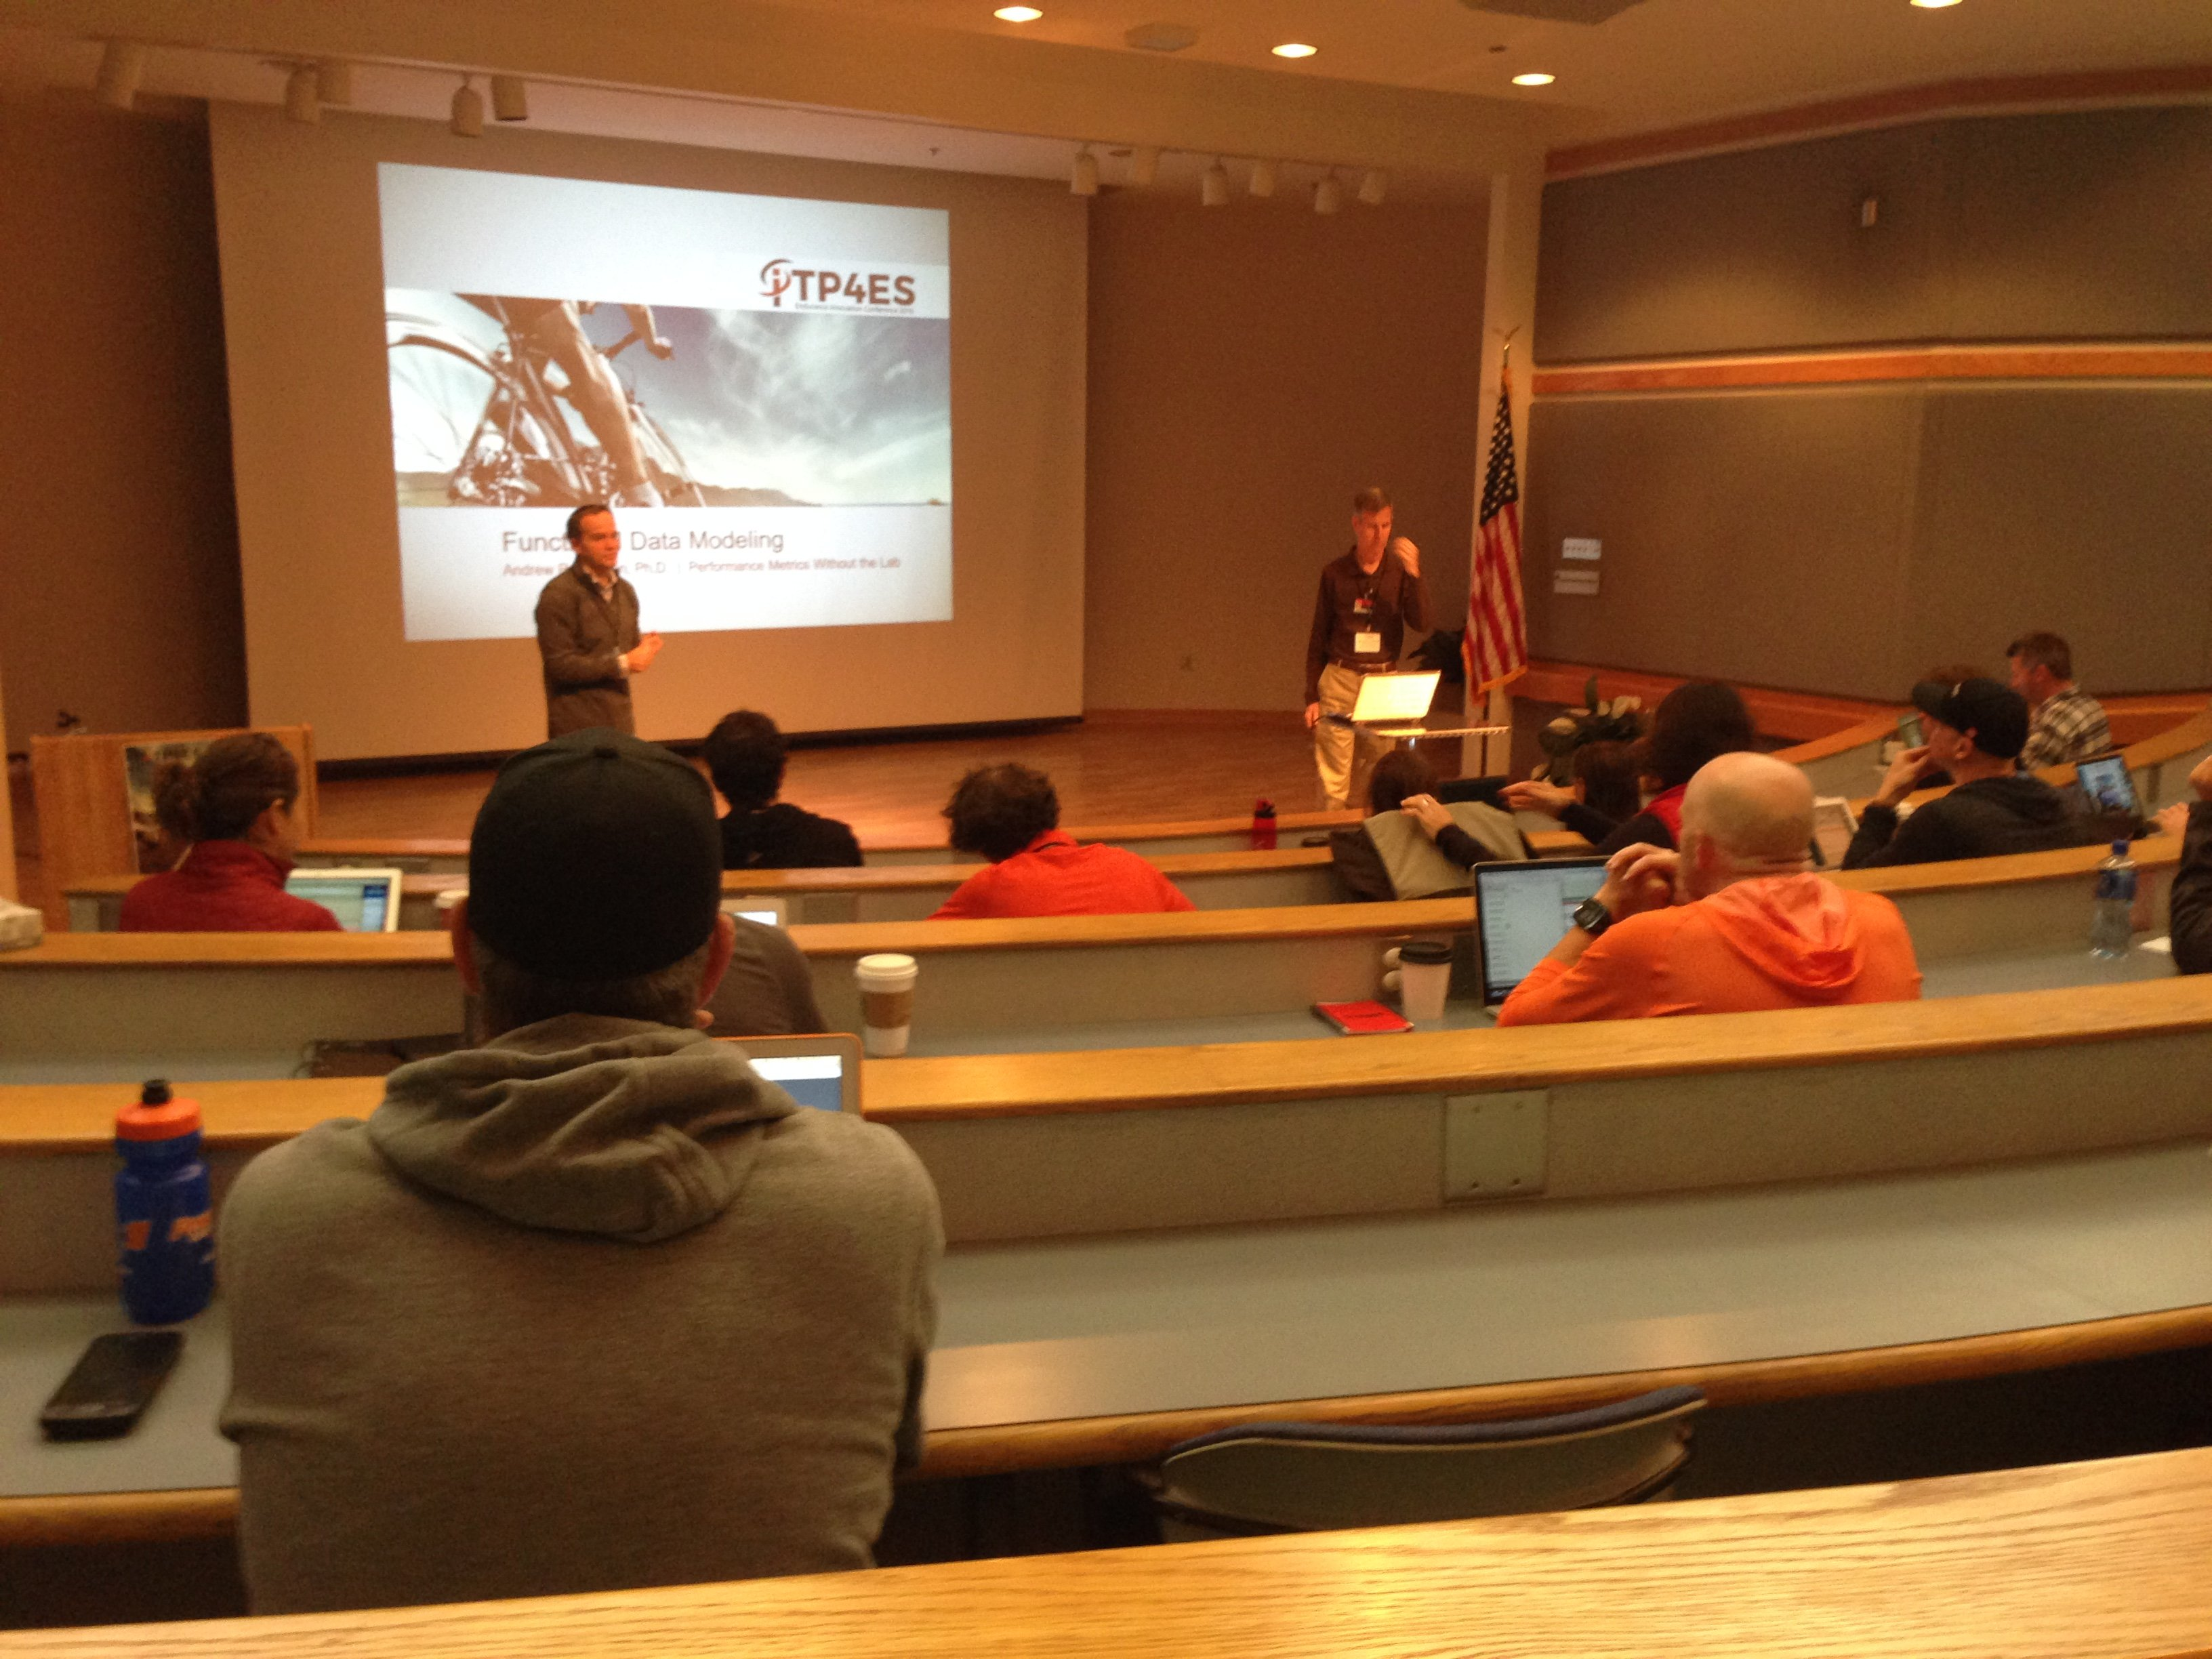 Tim Cusick and Andy Coggan speaking at the 2016 ITP4ES conference